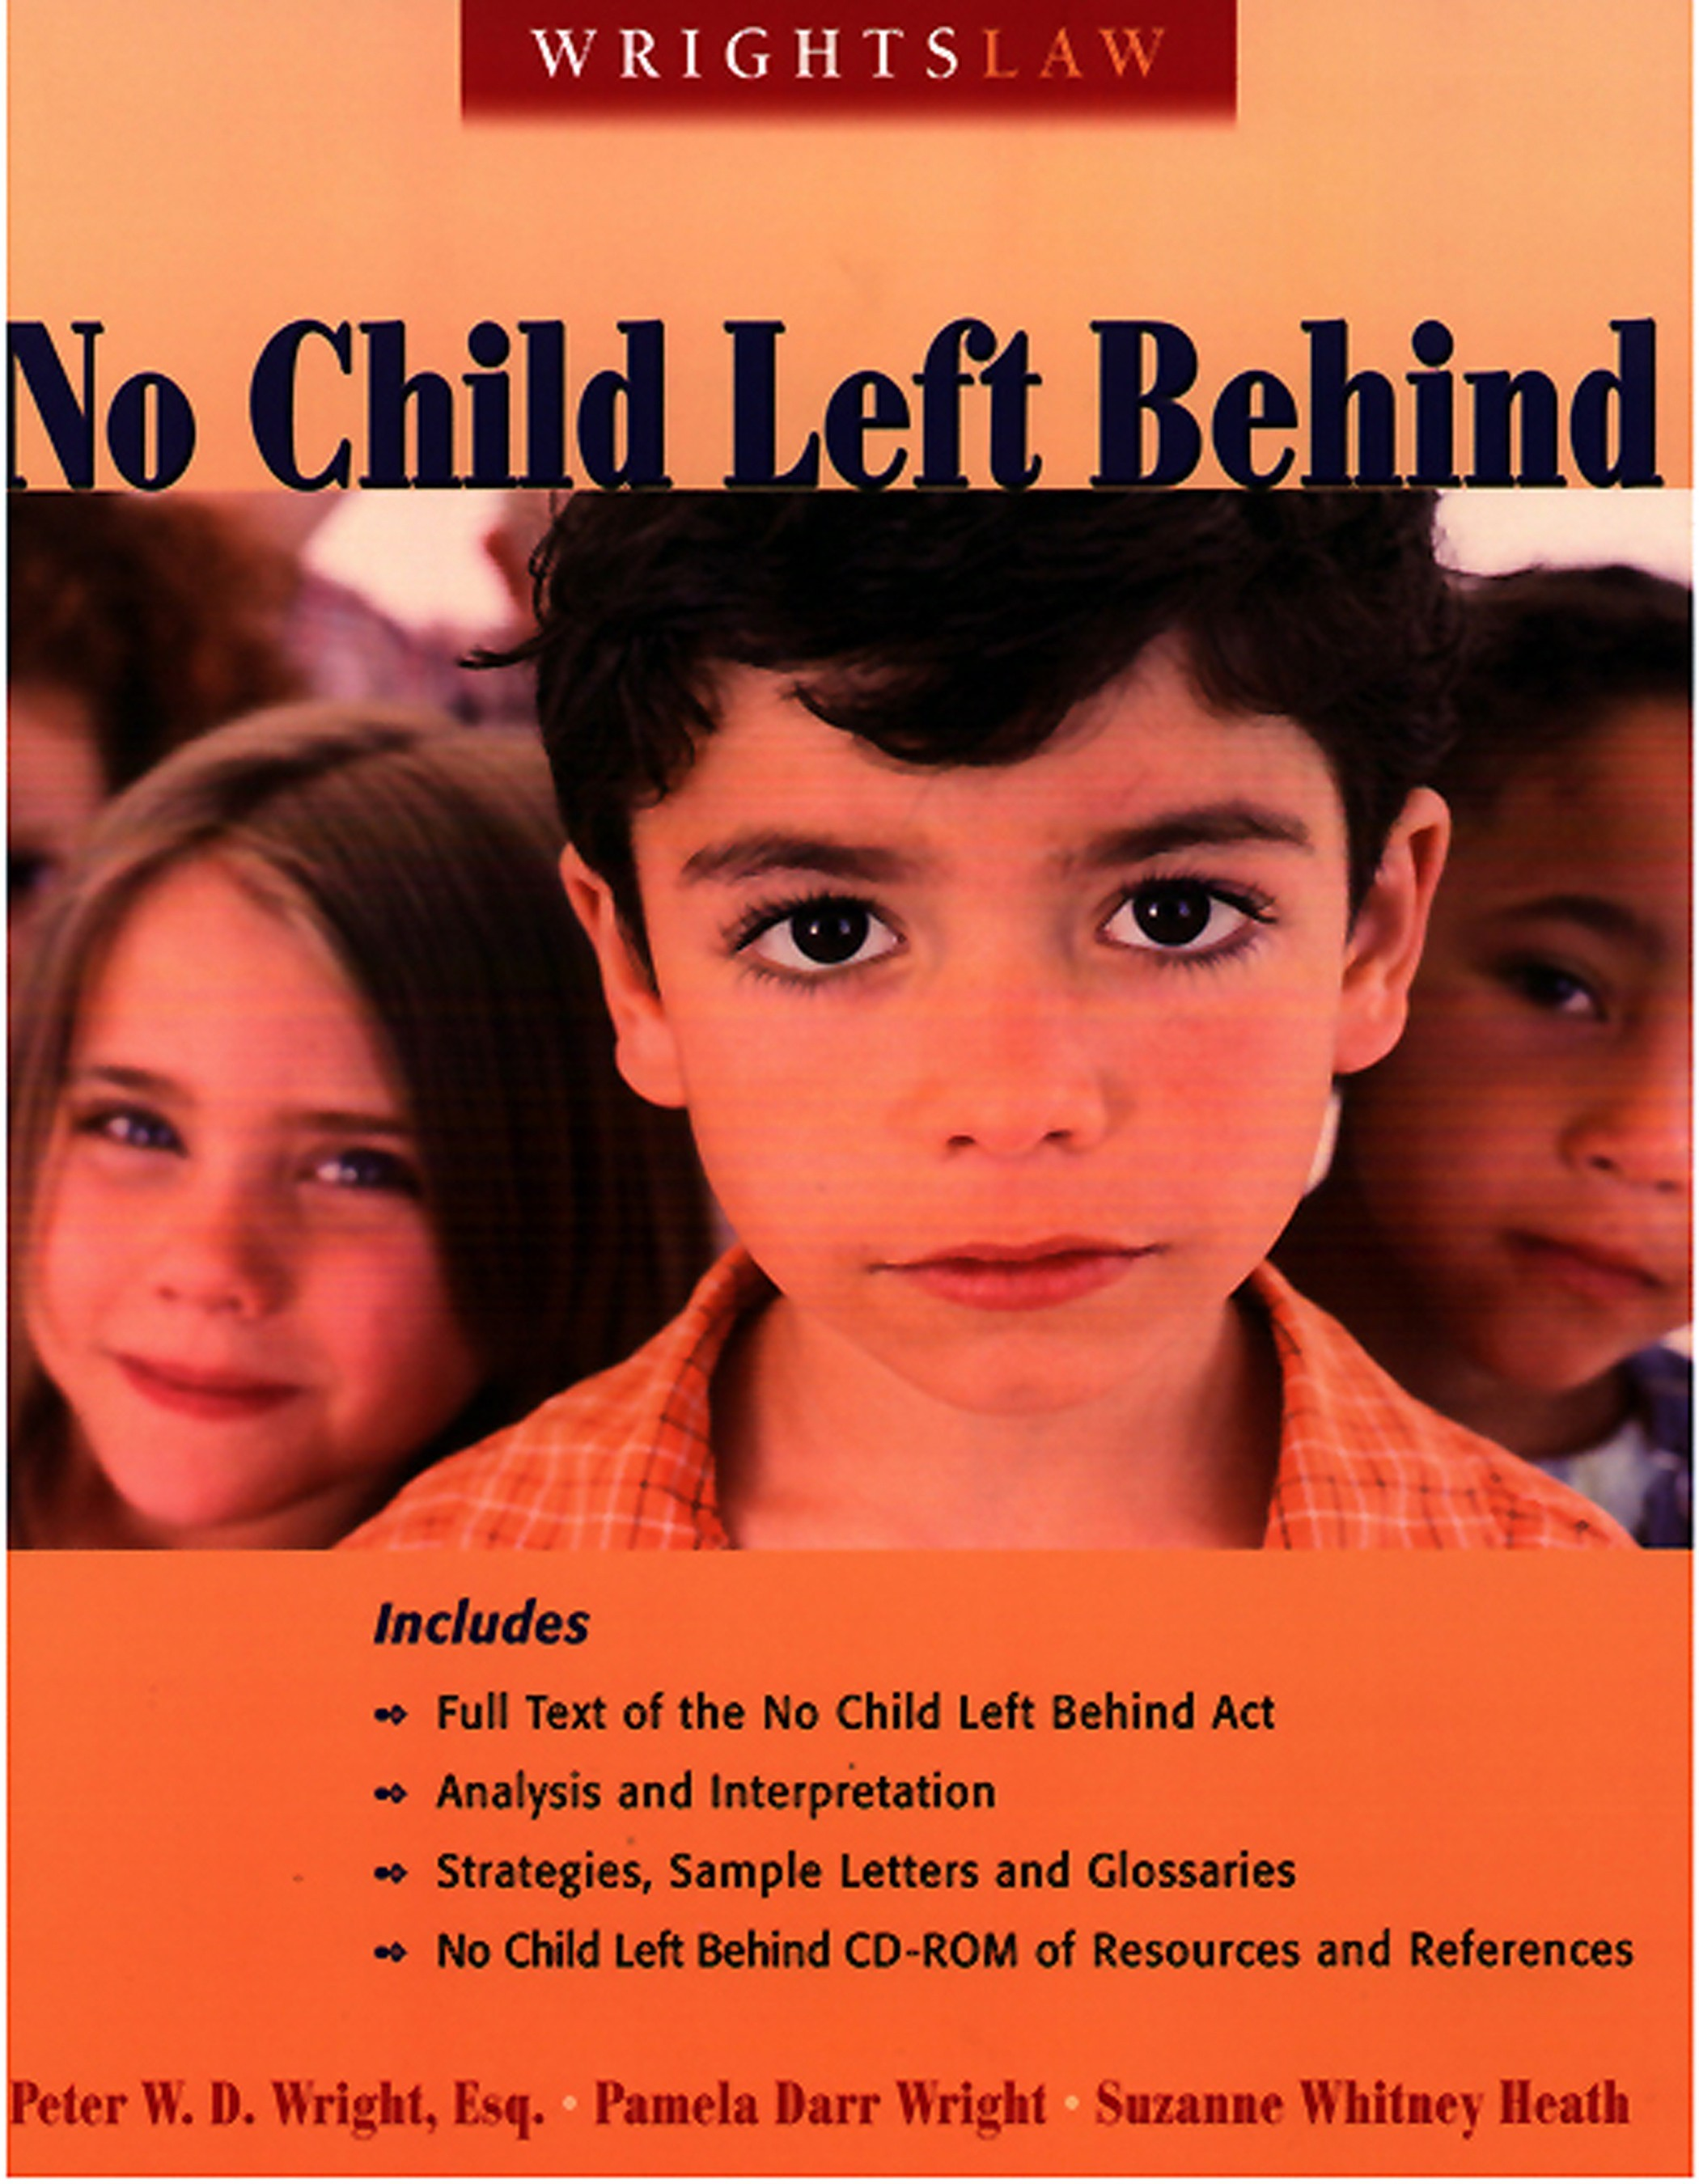 nclb essay No child left behind act (nclb) essays: over 180,000 no child left behind act (nclb) essays, no child left behind act (nclb) term papers, no child left behind act (nclb) research paper, book reports 184 990 essays, term and research papers available for unlimited access.